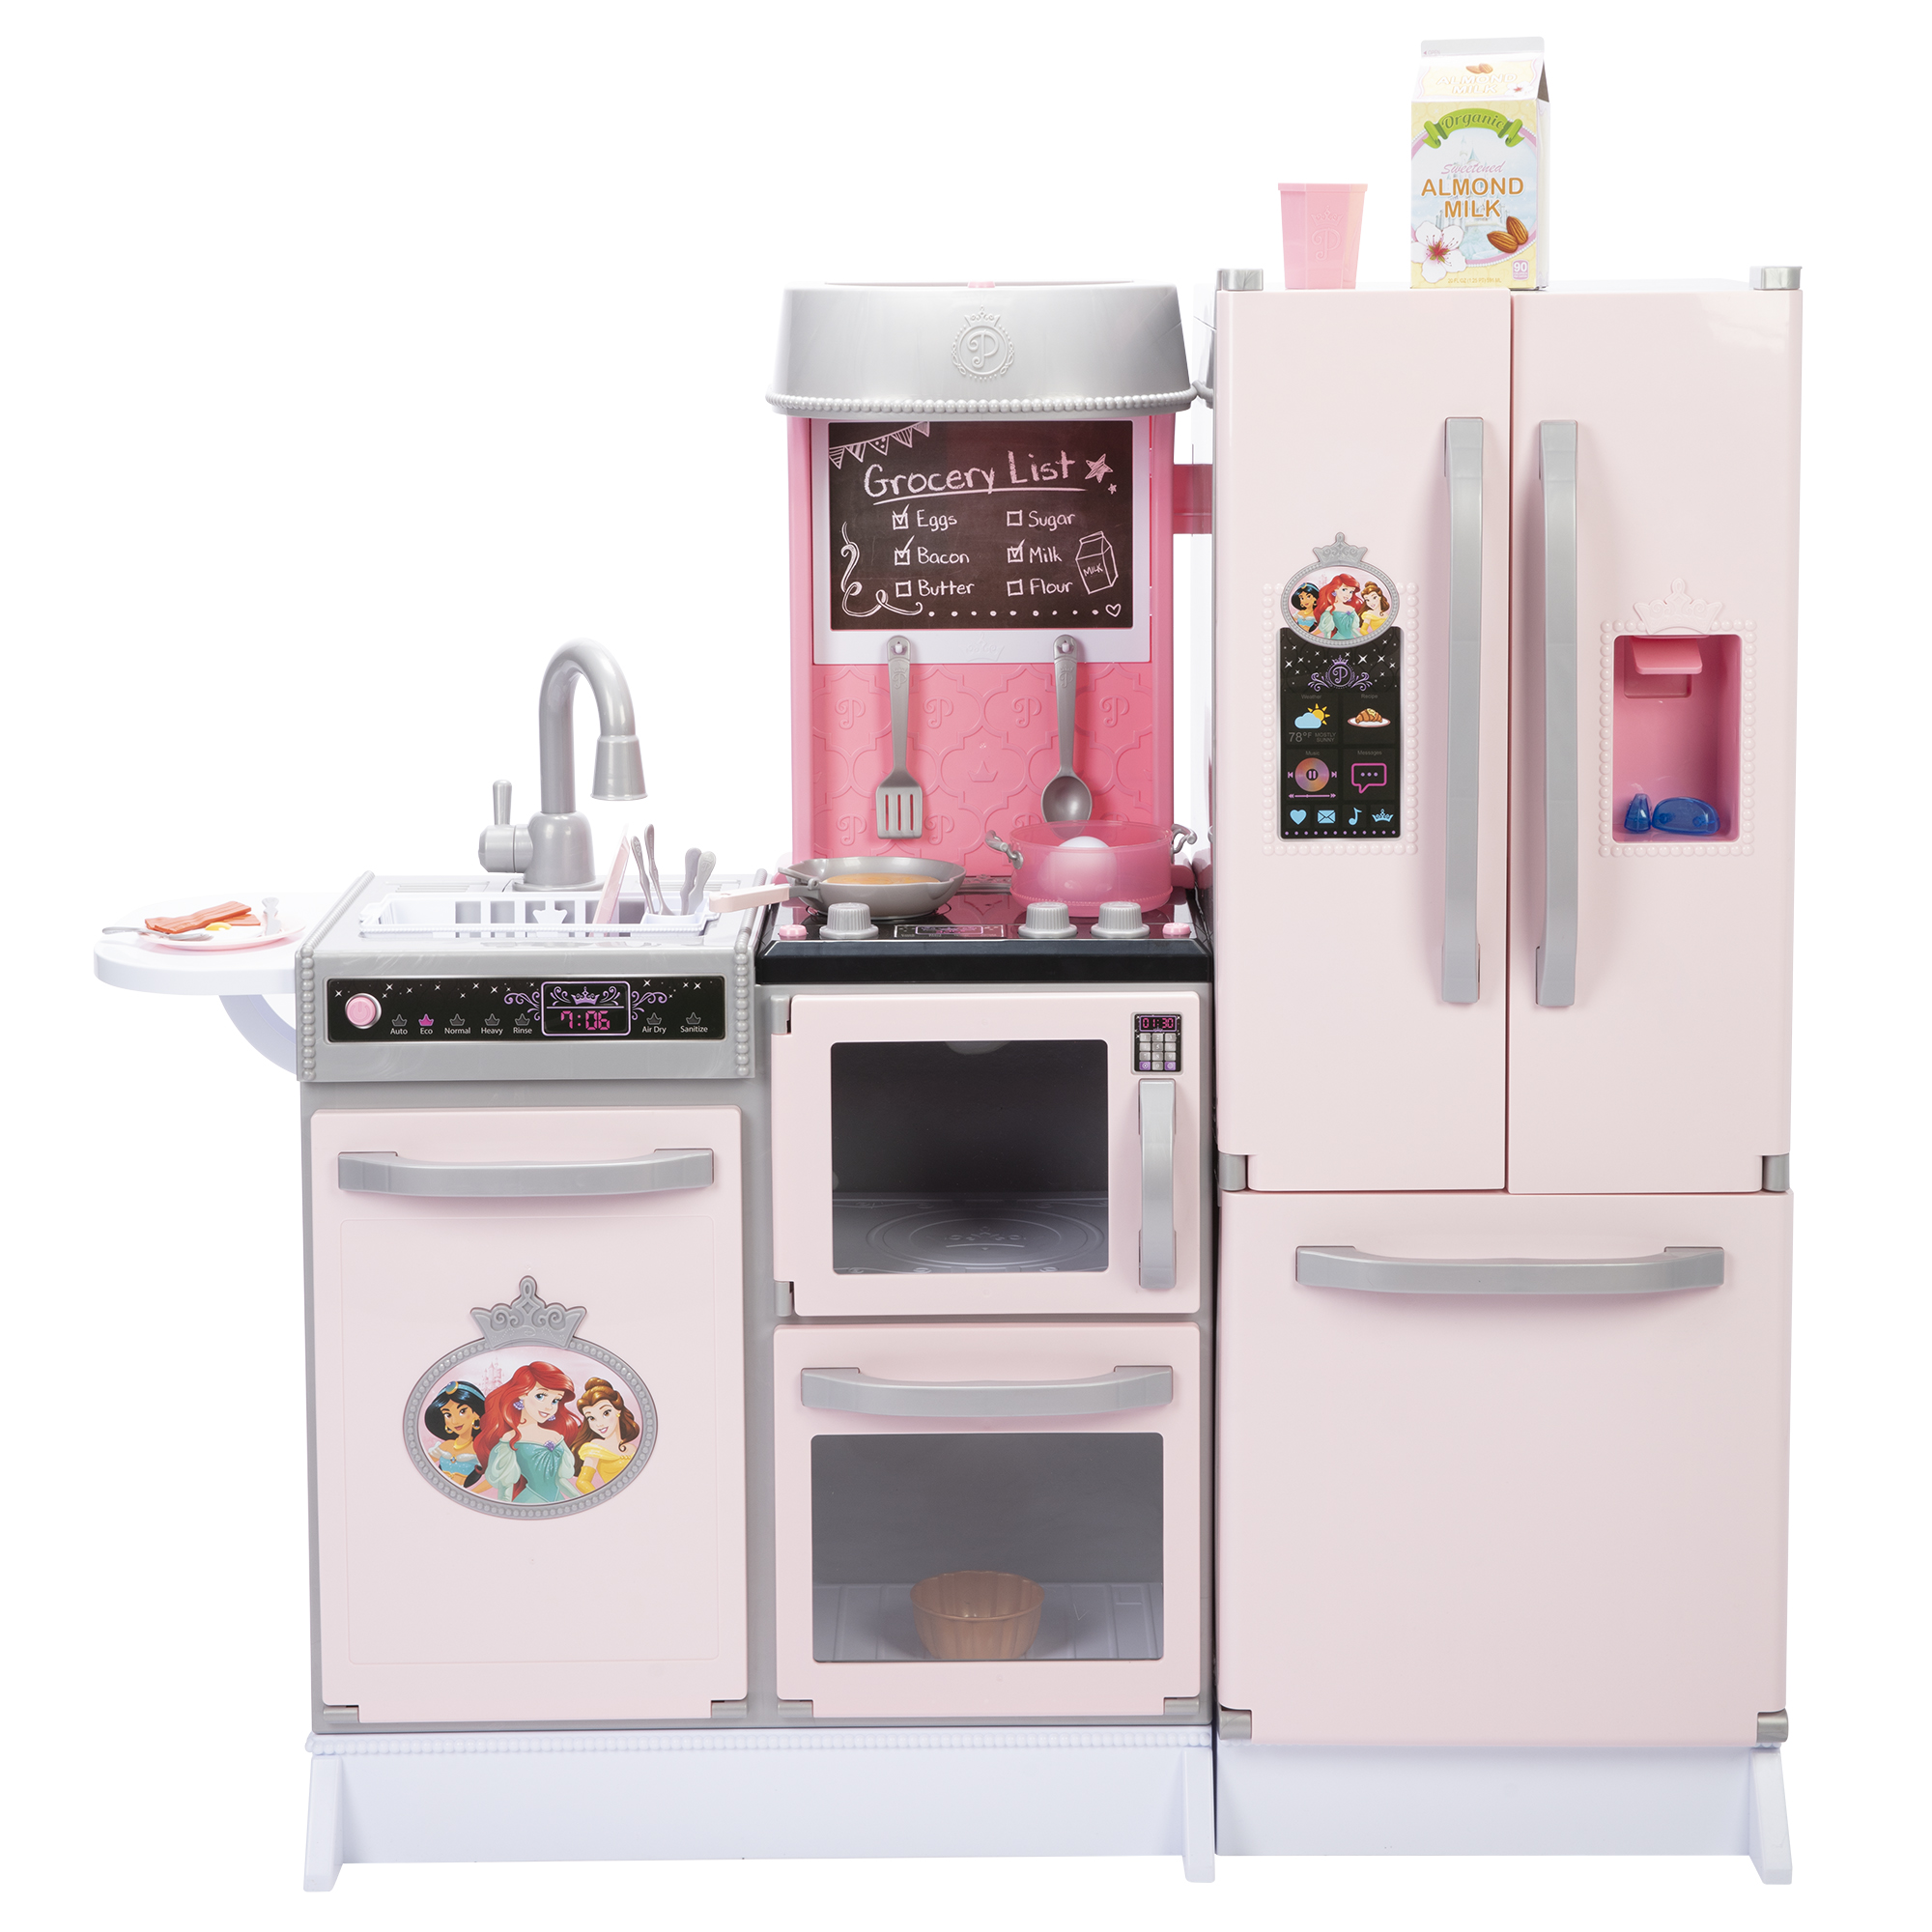 Disney Princess Style Collection Gourmet Smart Kitchen